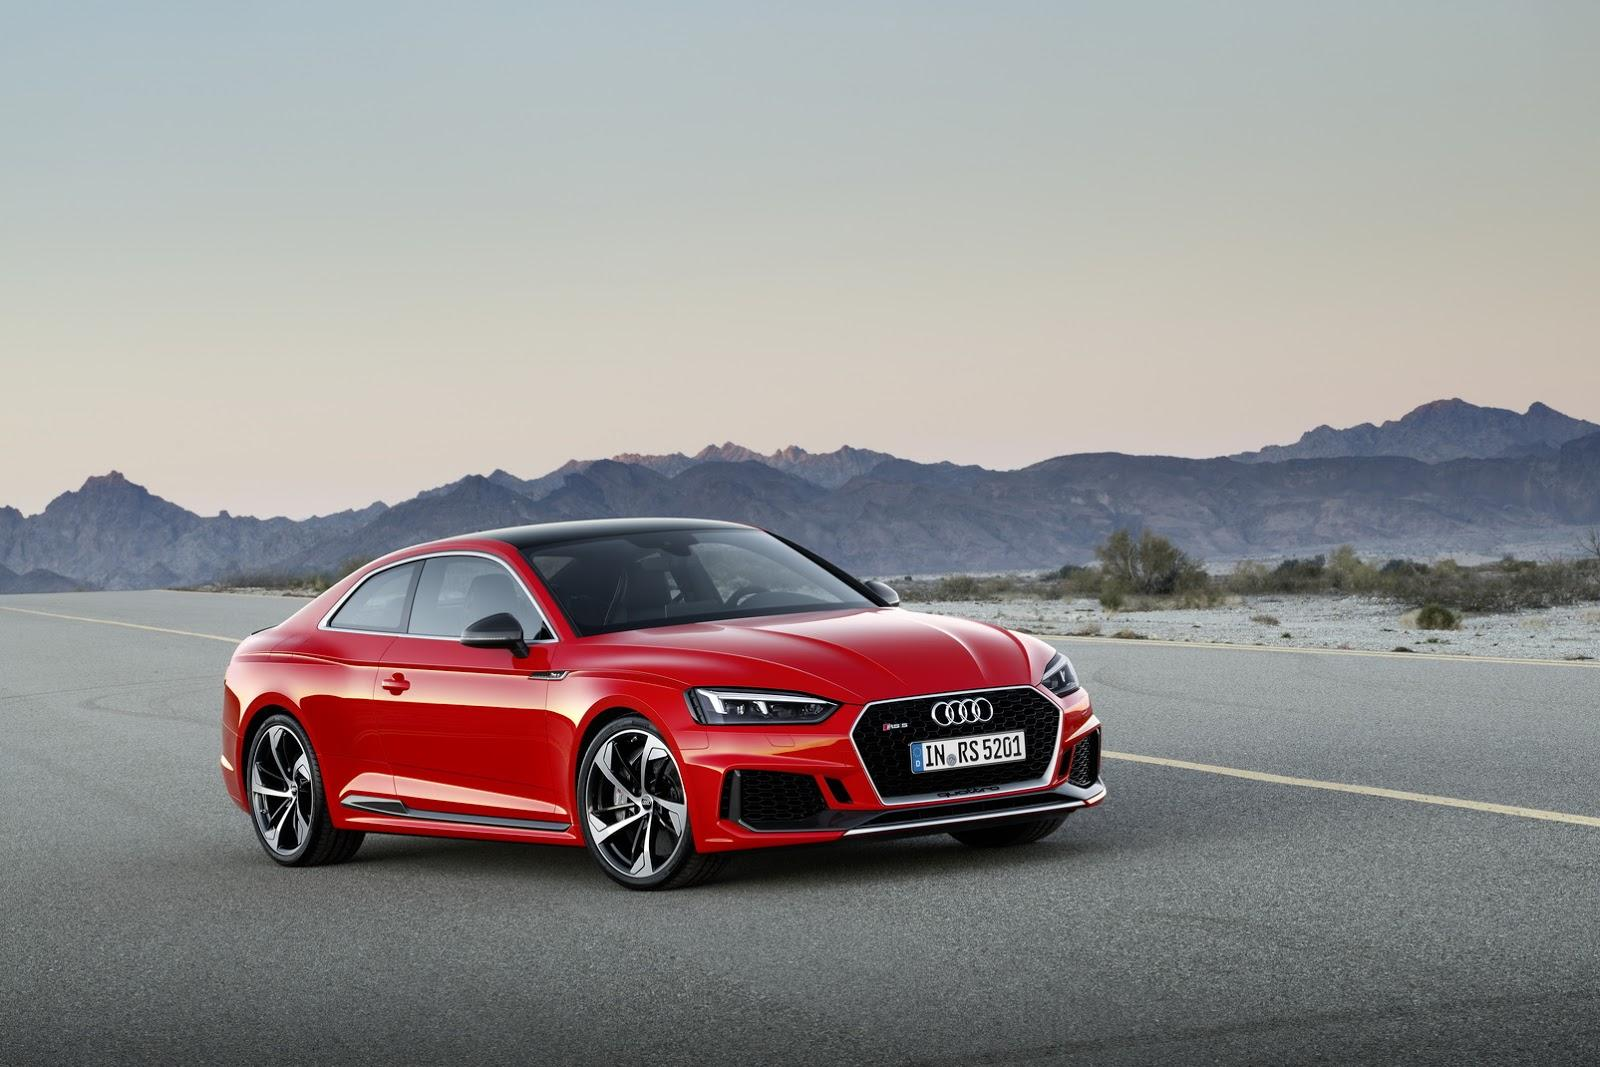 Audi RS5 Coupe - Audi RS5 Coupe